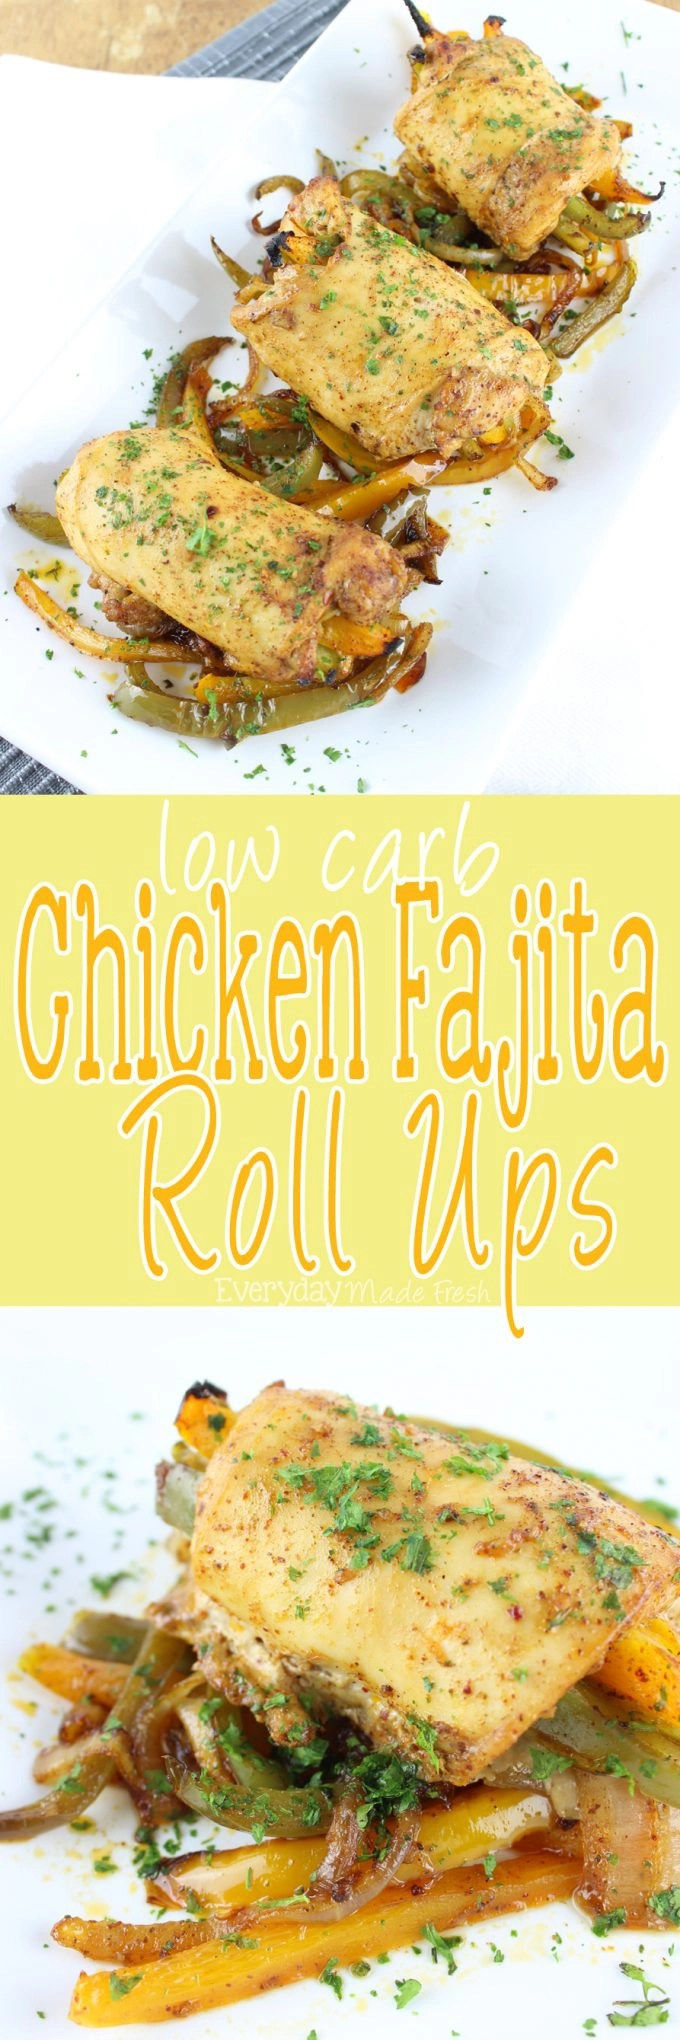 Skip the shell, and go with these Low Carb Chicken Fajita Roll Ups! Easy to make, and super tasty! | EverydayMadeFresh.com